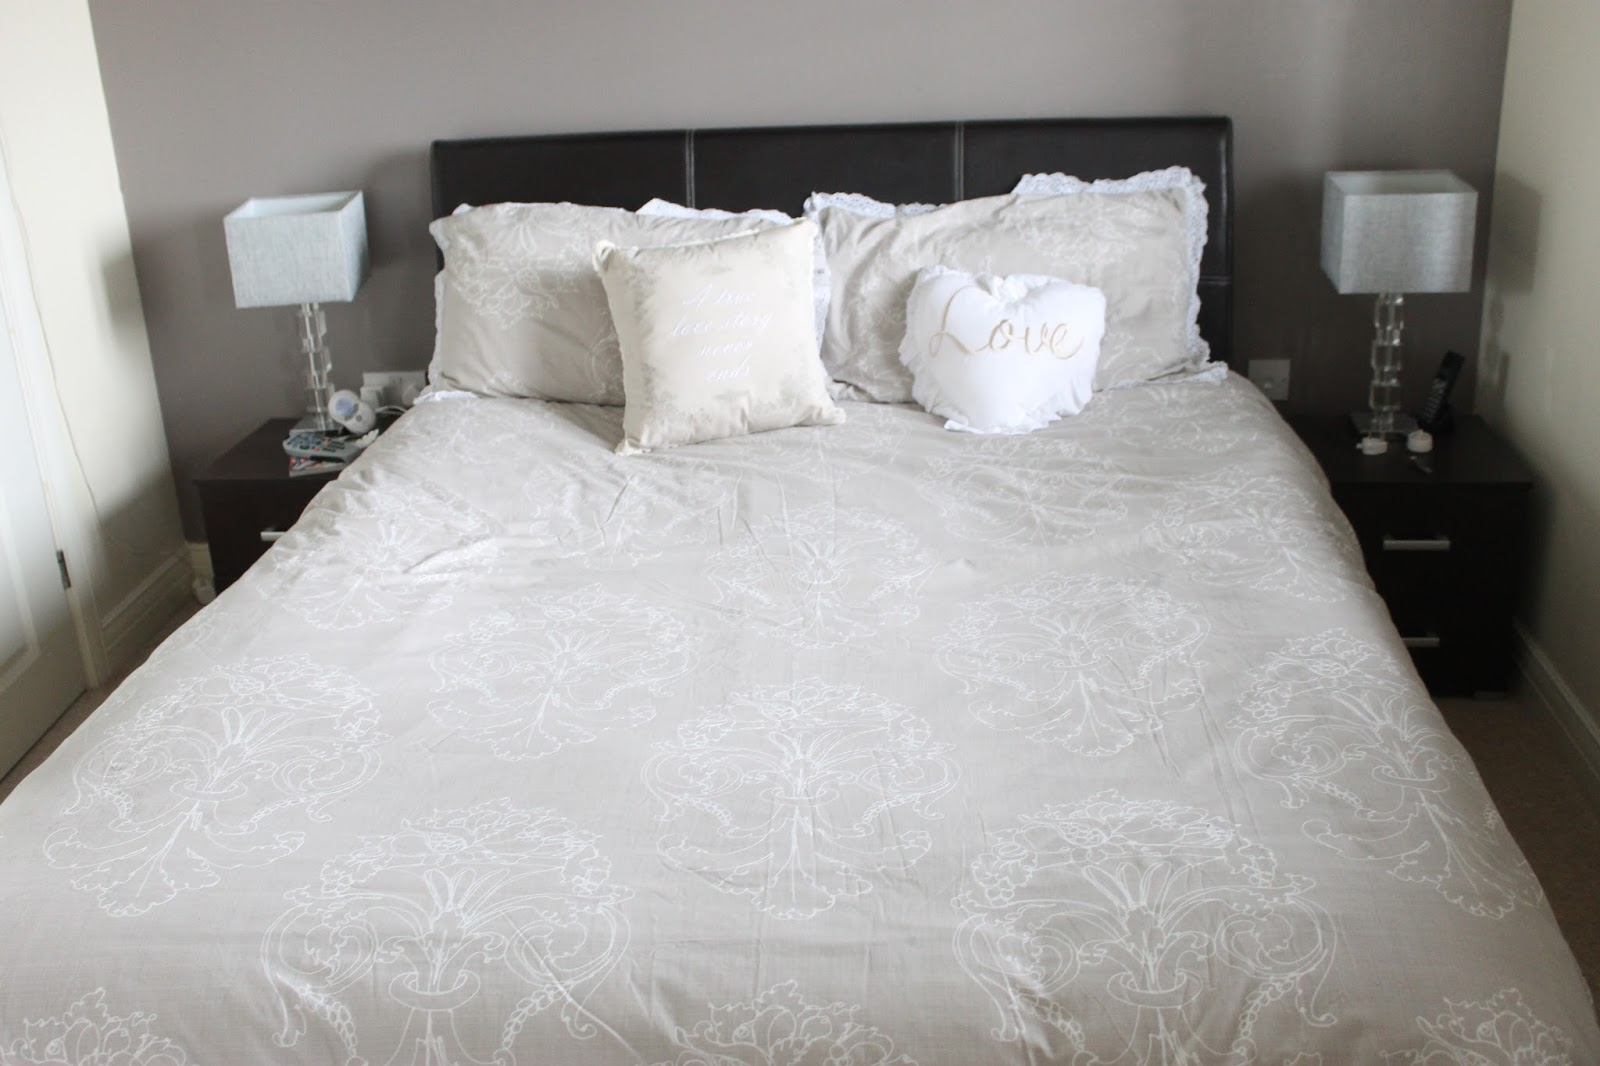 Next bedding, vintage style bedding, bedding, vintage bedroom, vintage decor